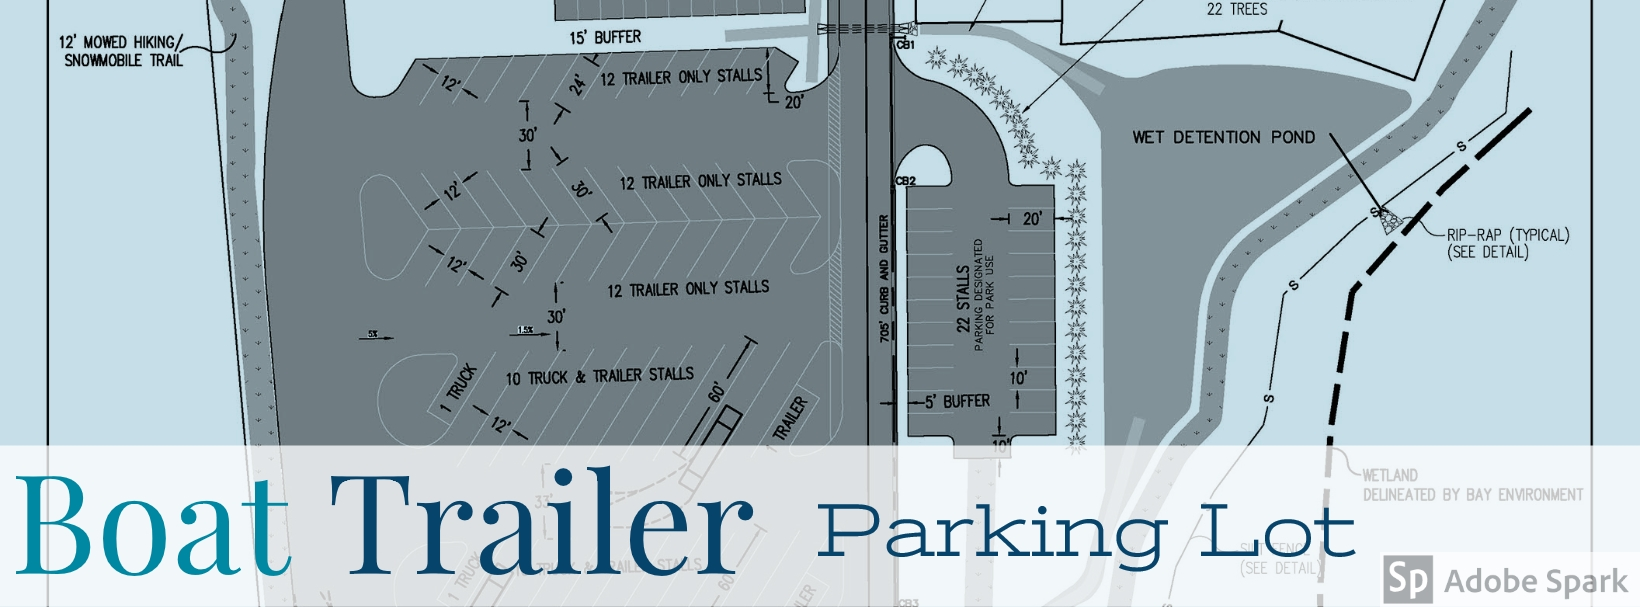 Boat Trailer Parking Lot Banner